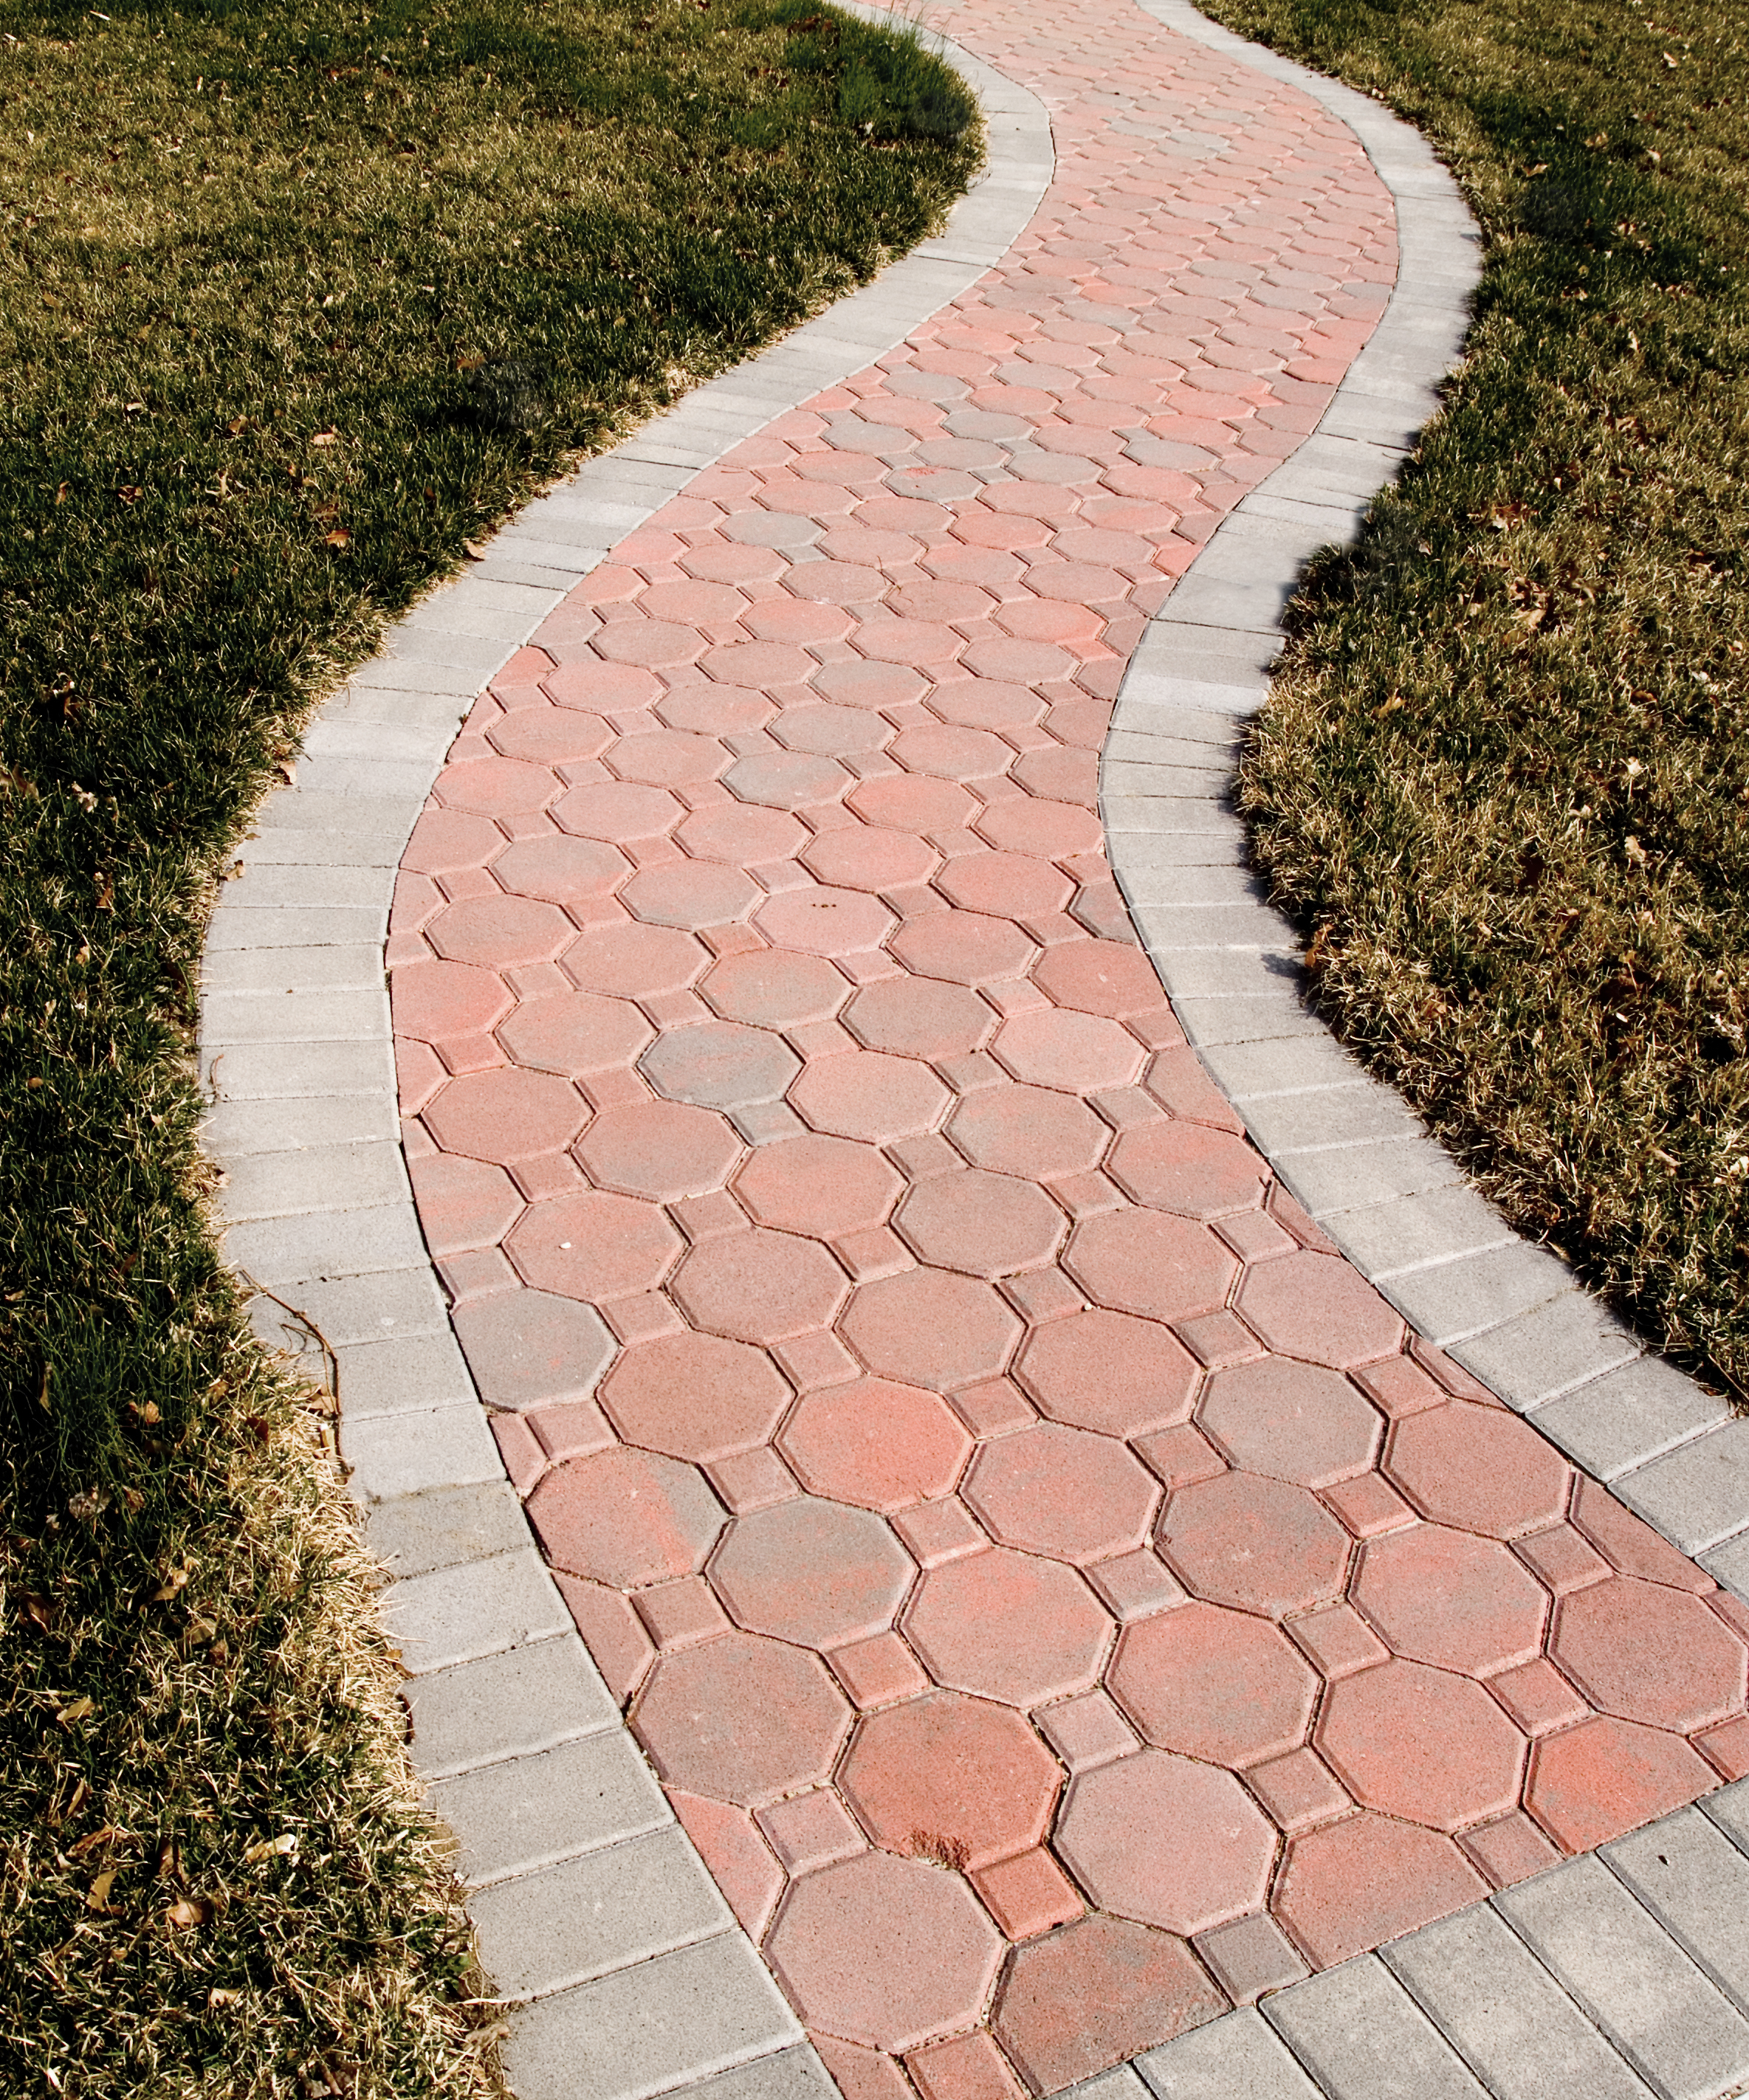 40 Different Garden Pathway Ideas: What Materials Should You Use For Your Sykesville Walkway